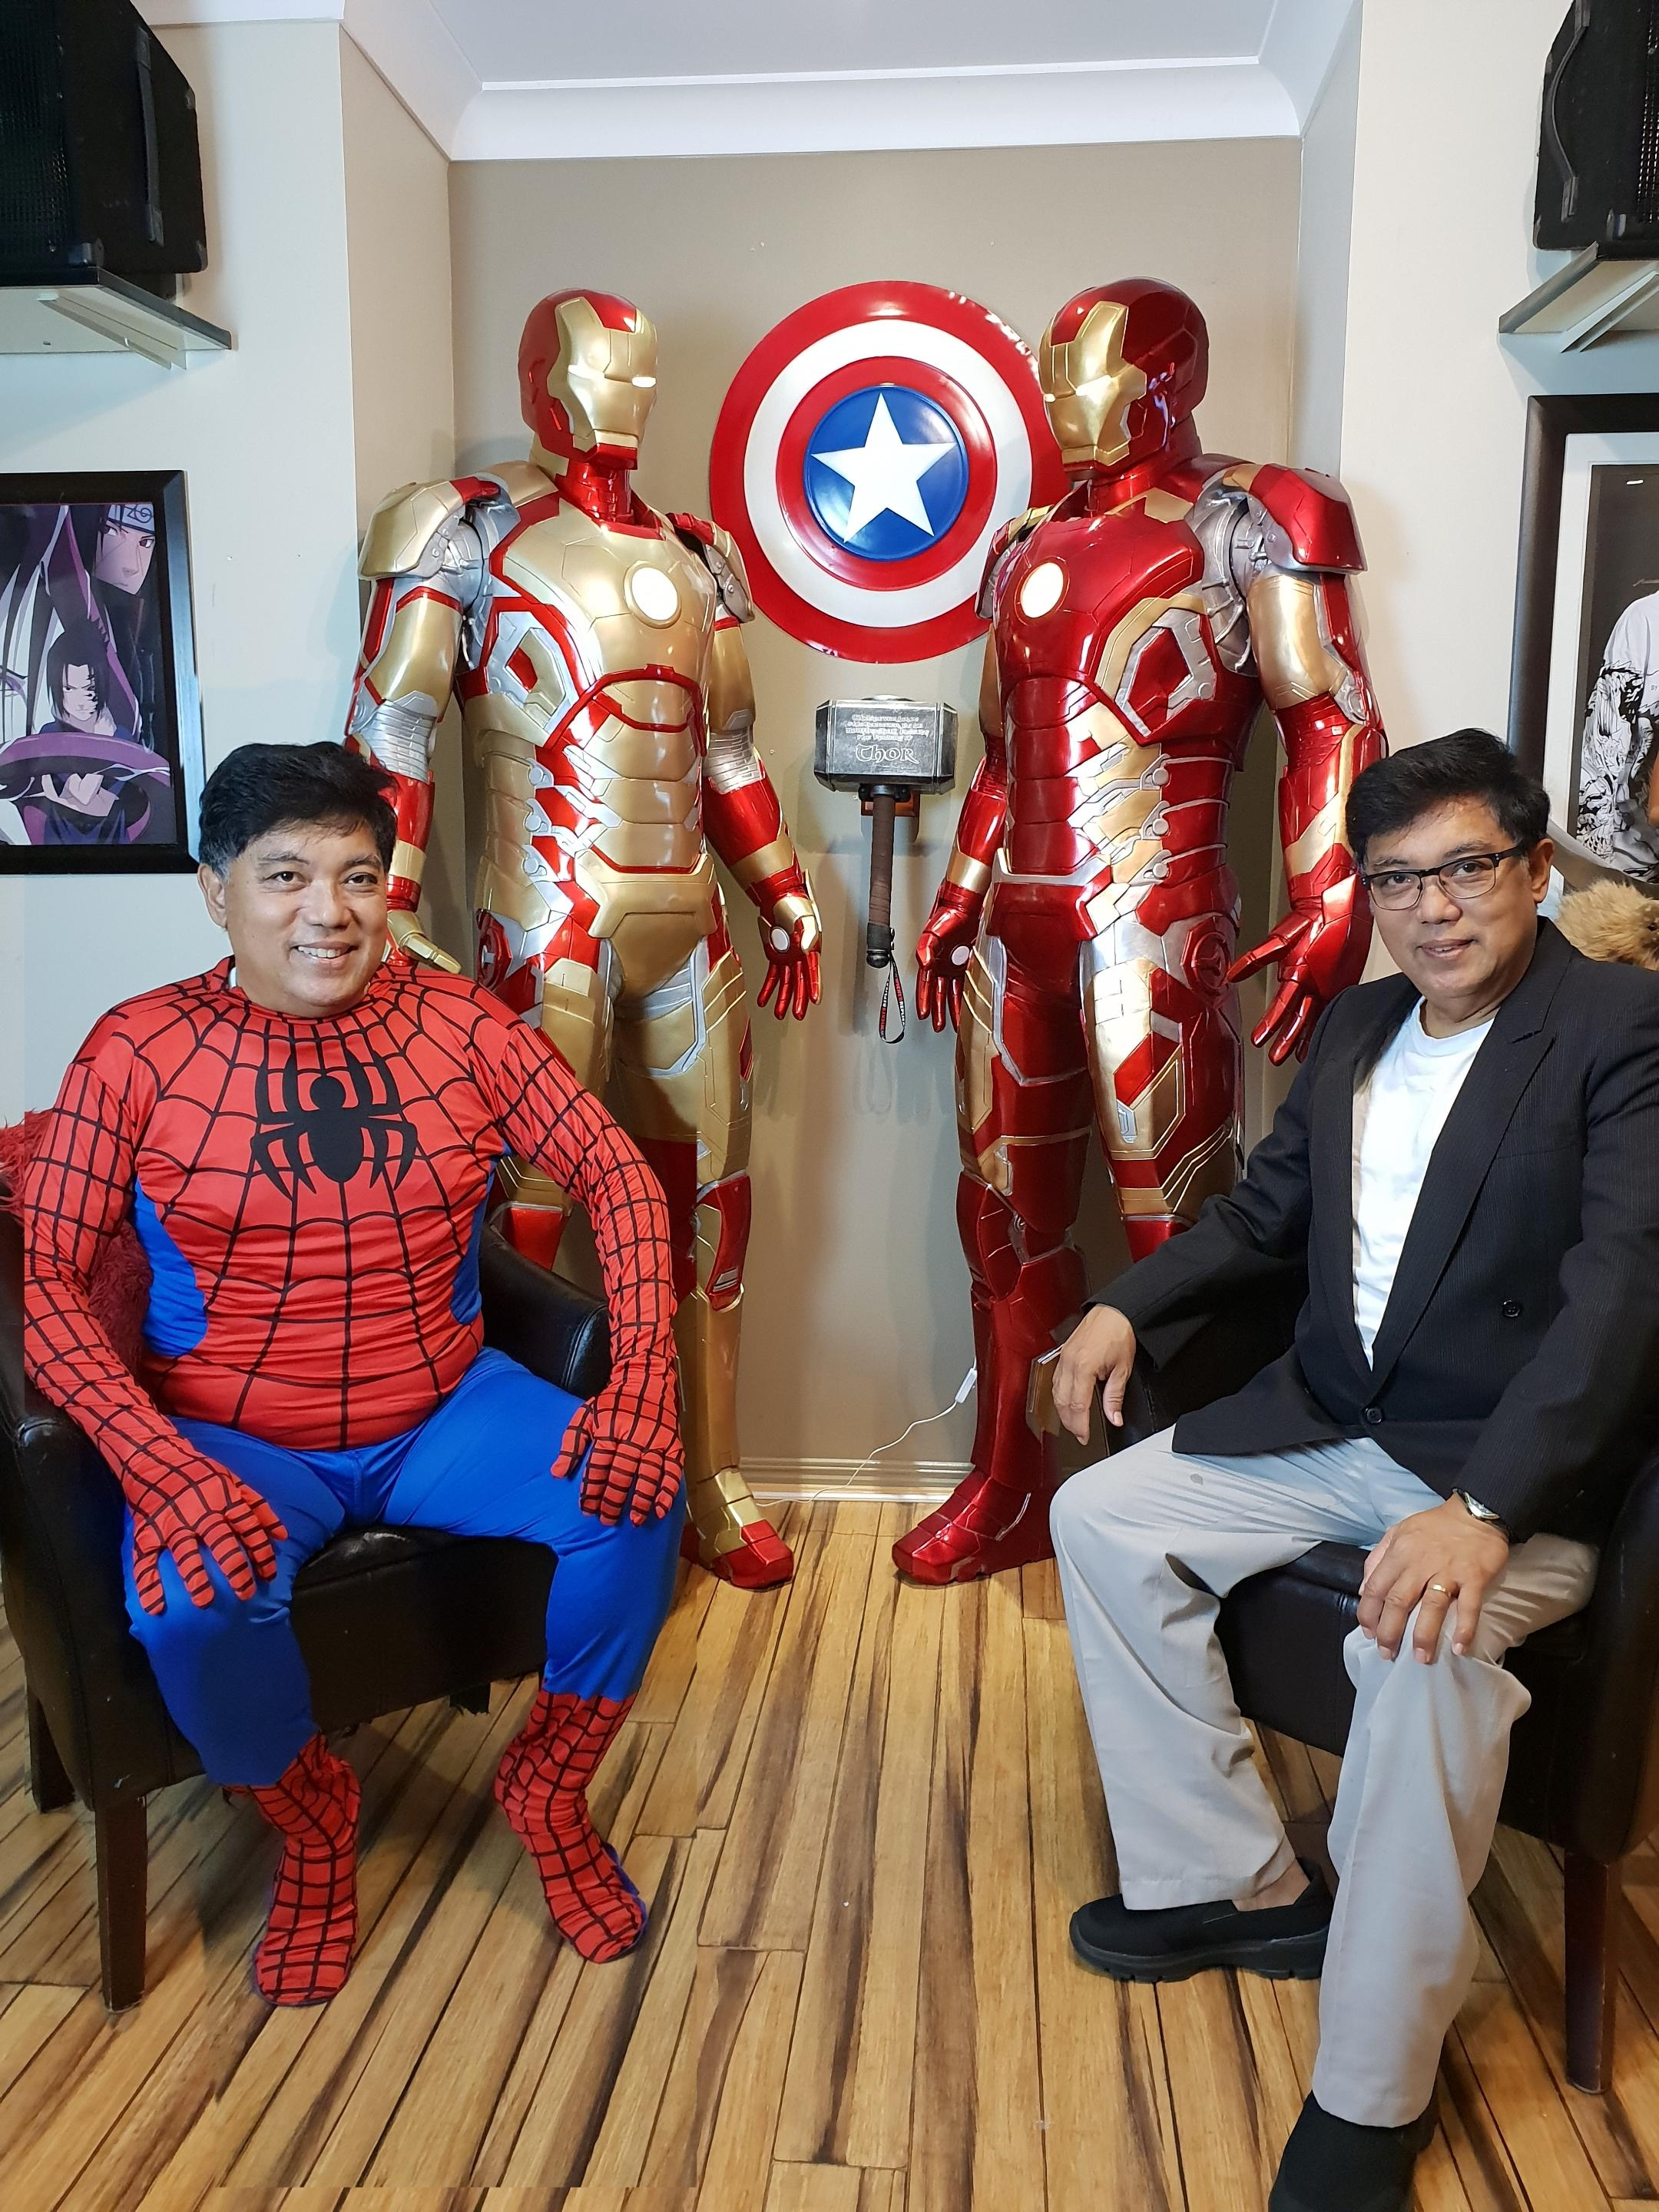 Life size Iron Man statues -- Mark 42 and Mark 43